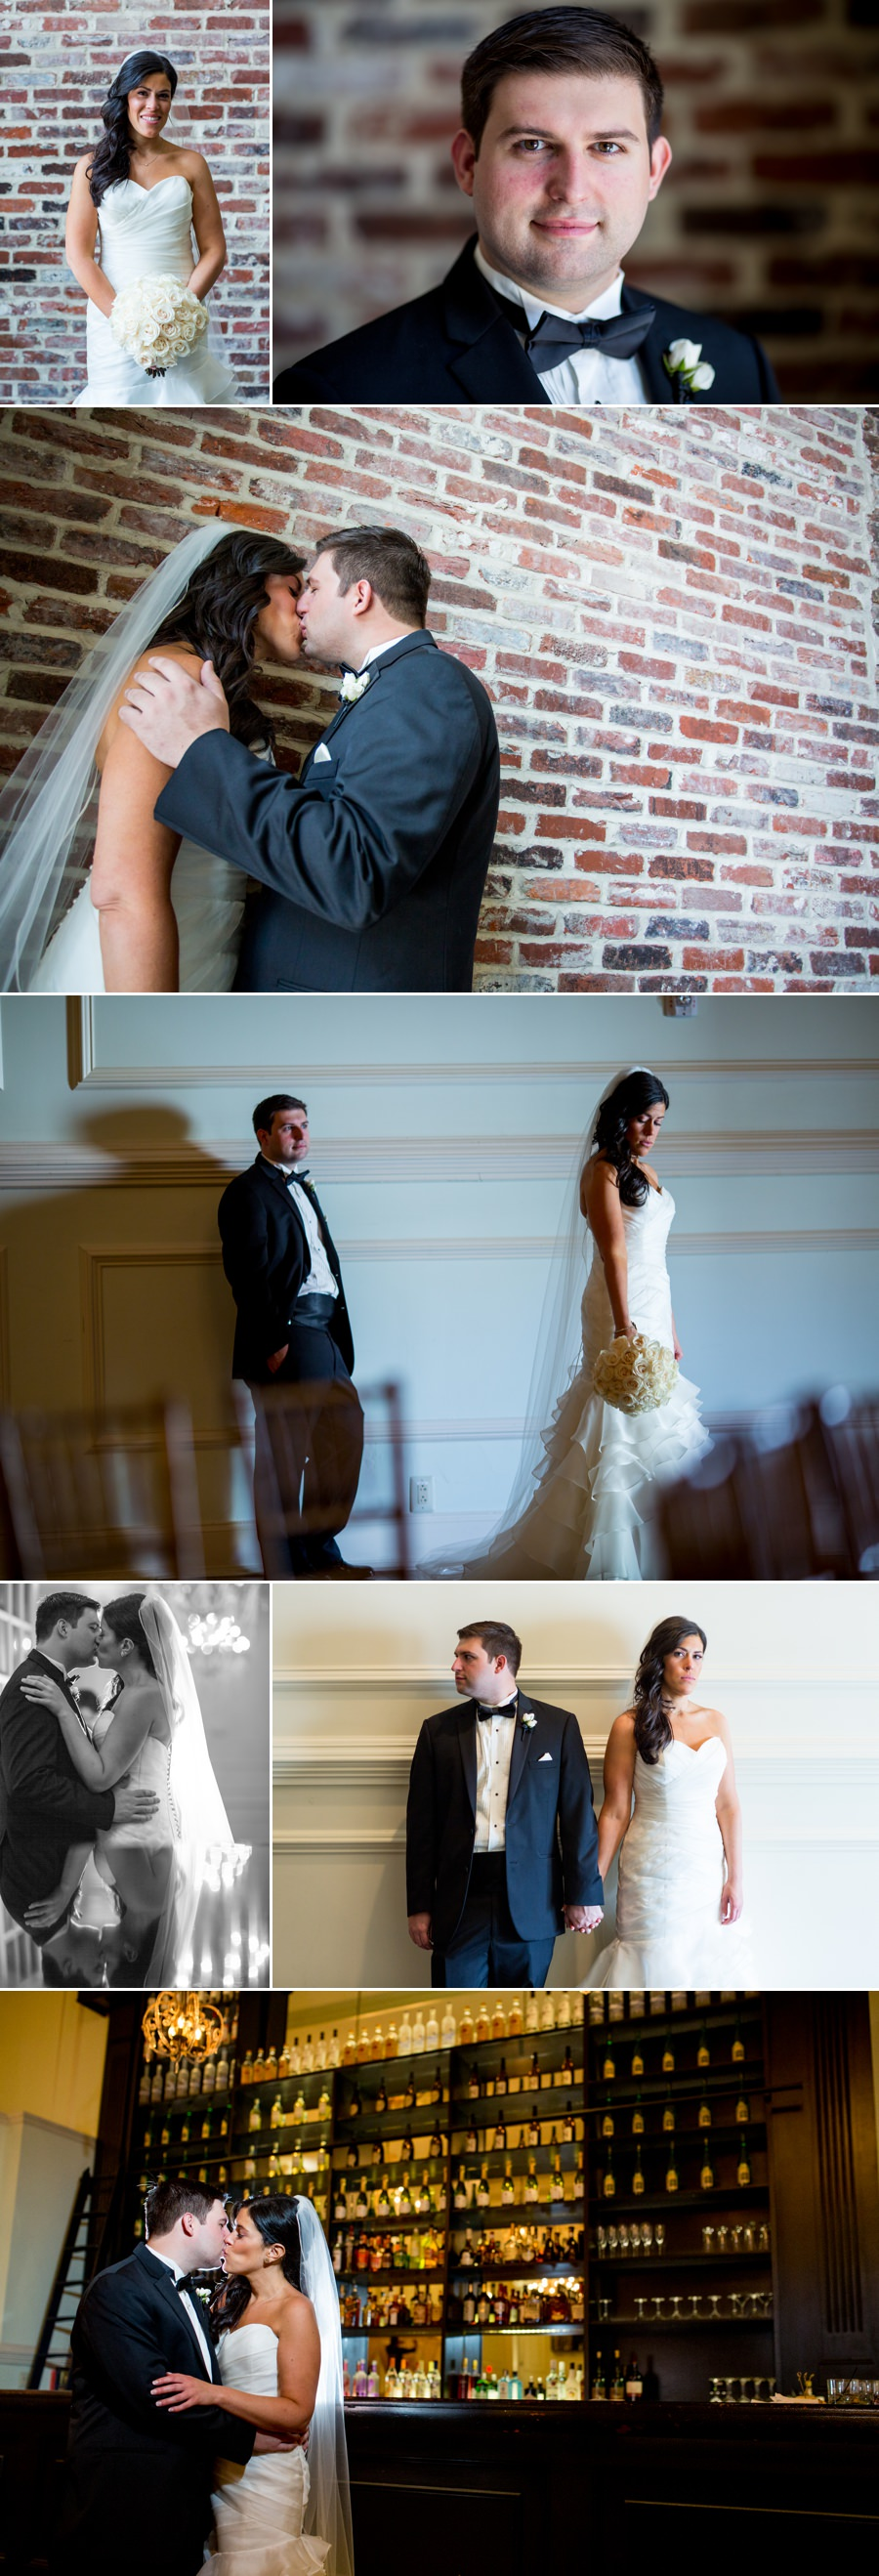 New Country Mini >> Cescaphe – Wedding Photos – Rebecca & Michael – Candid Moments Photography